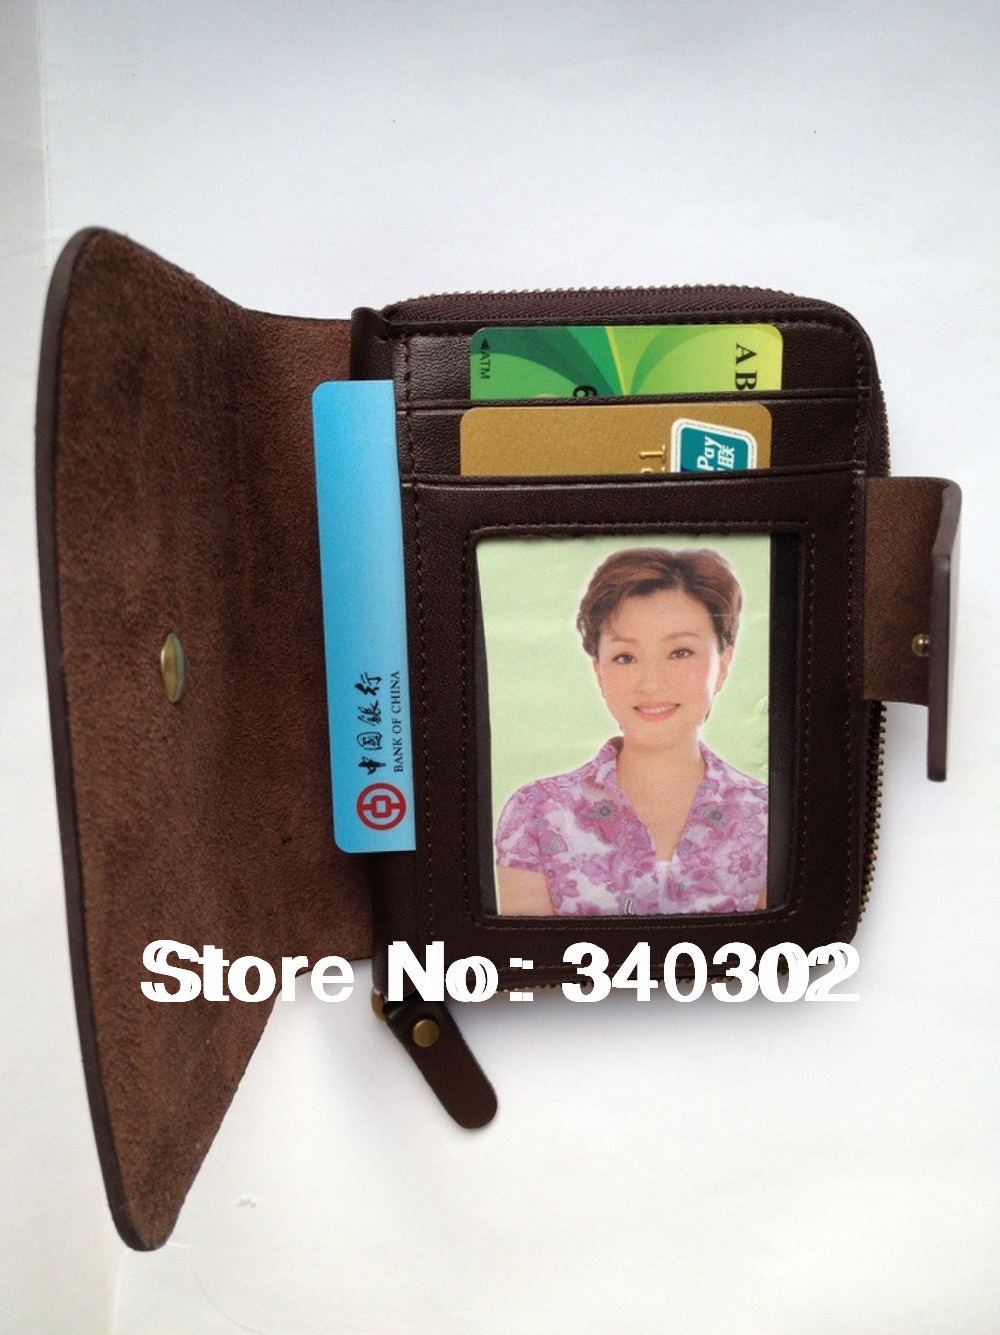 Quality short design genuine leather wallet card pack purse Unisex women man Discount Alicool gift ALIBABA LOGO Free Shipping(China (Mainland))